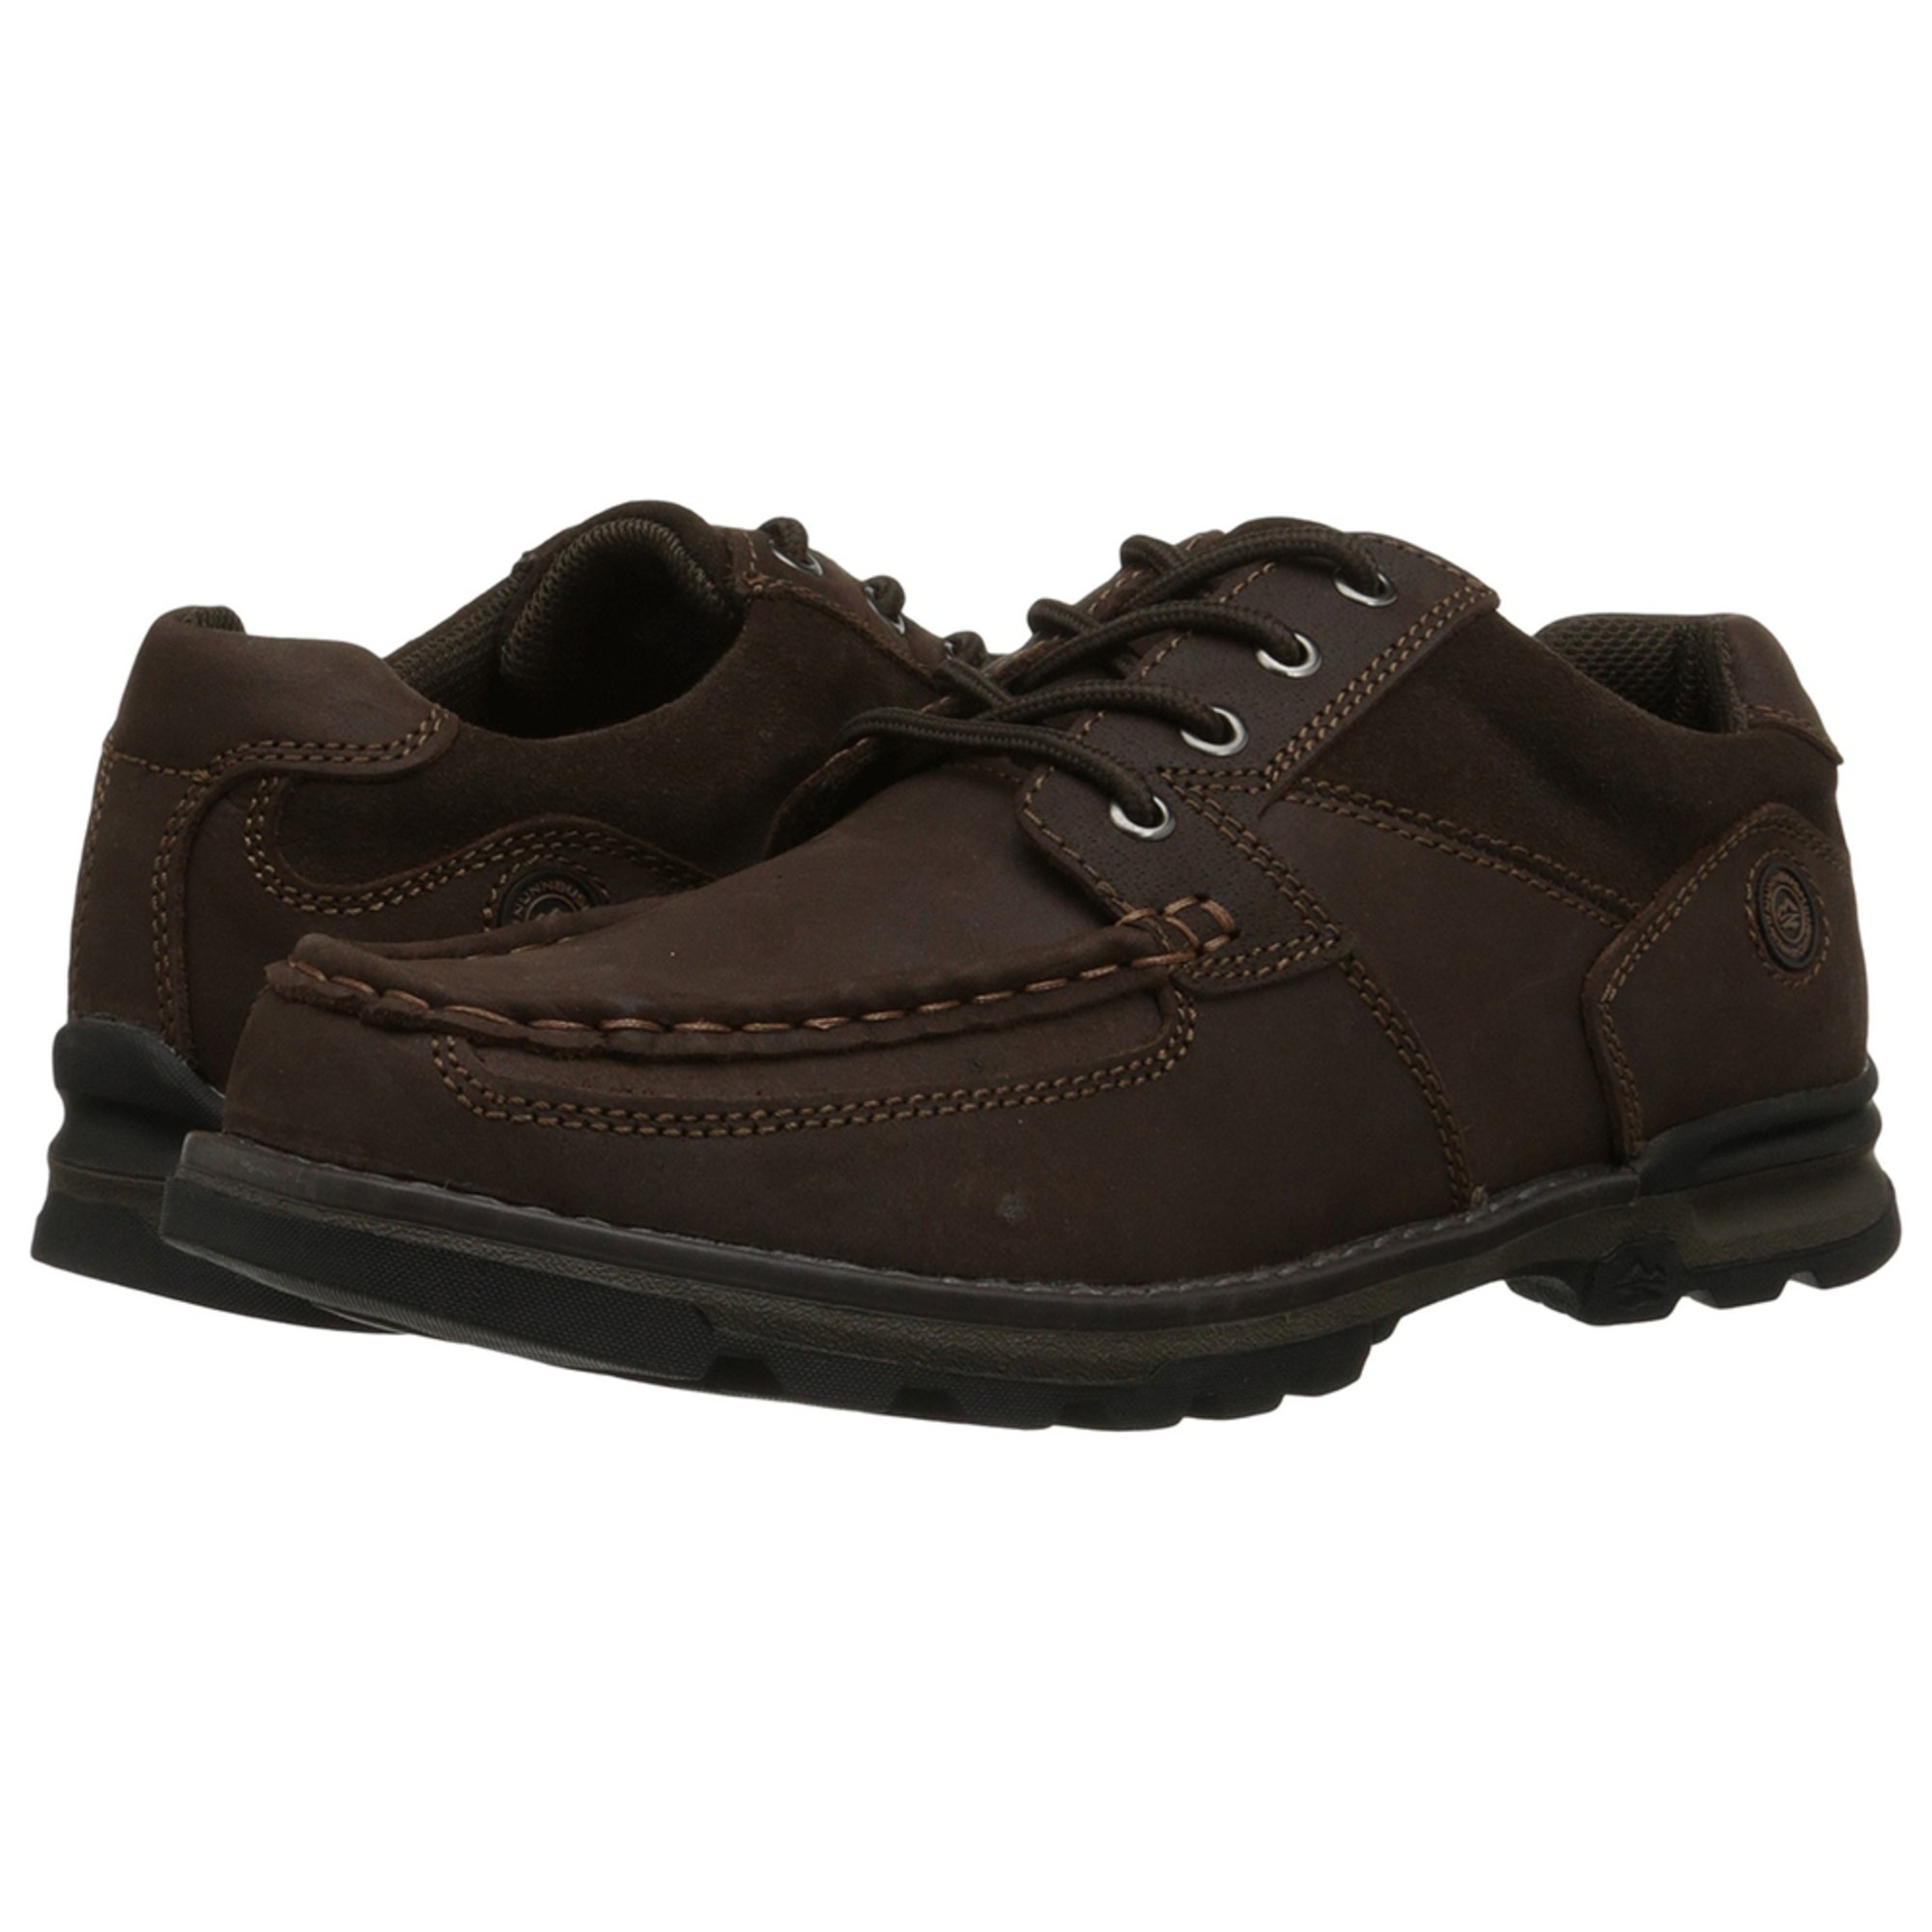 Nunn Bush Plover Moc Toe Oxford All Terrain Comfort TvwSV